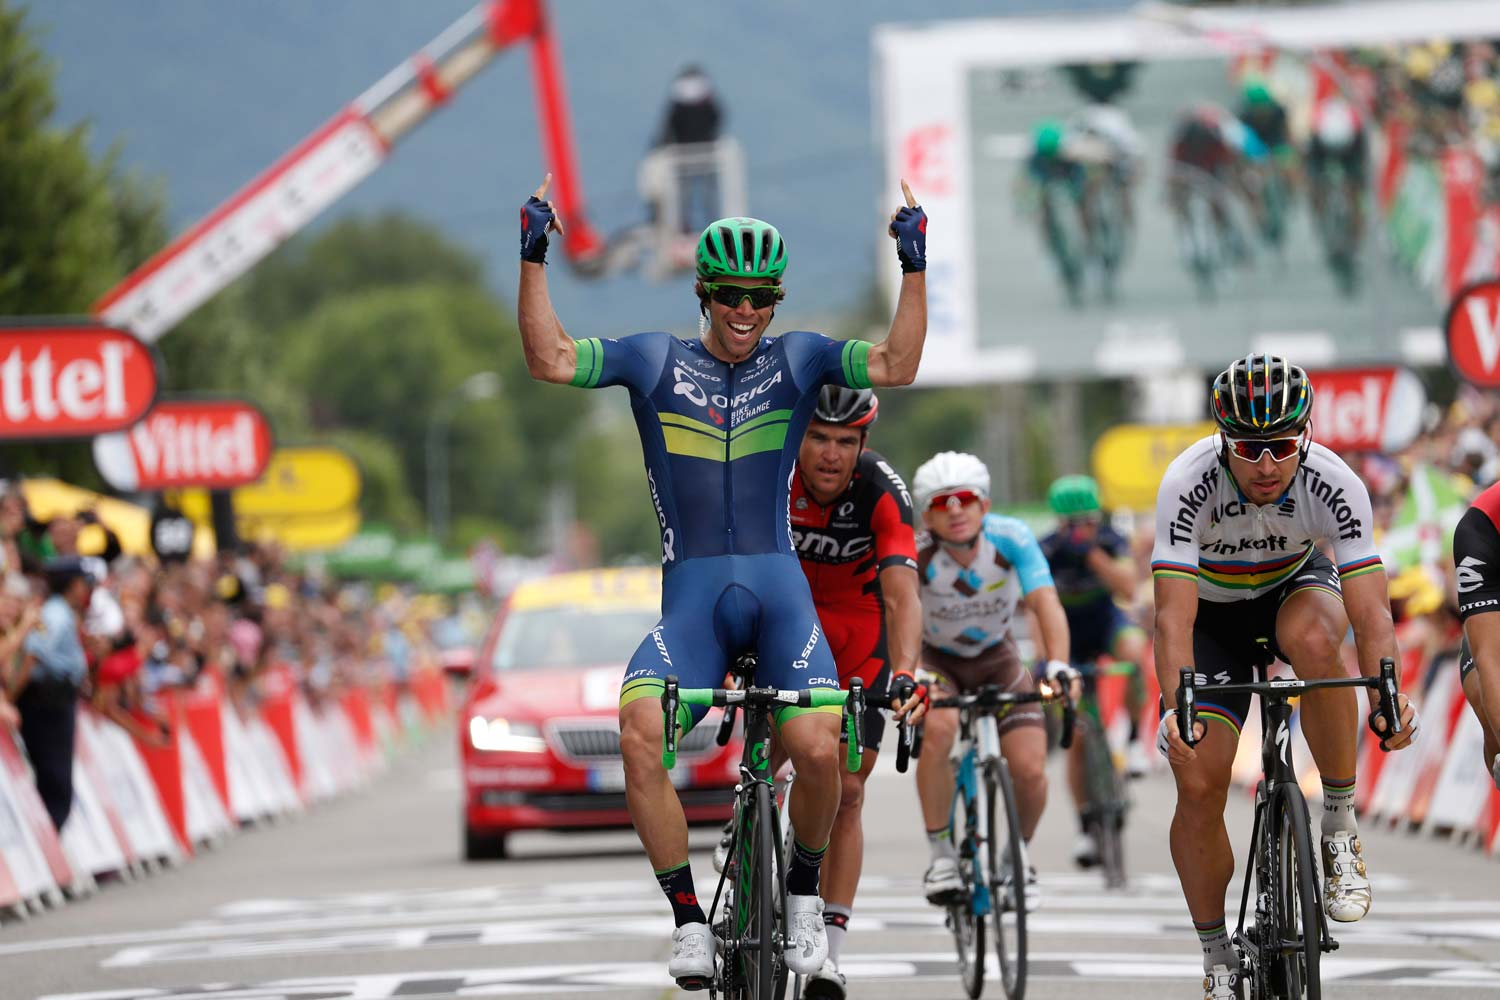 Mission accomplished: stage winner in Revel – Michael Matthews, ahead of Peter Sagan. Photo: Yuzuru Sunada